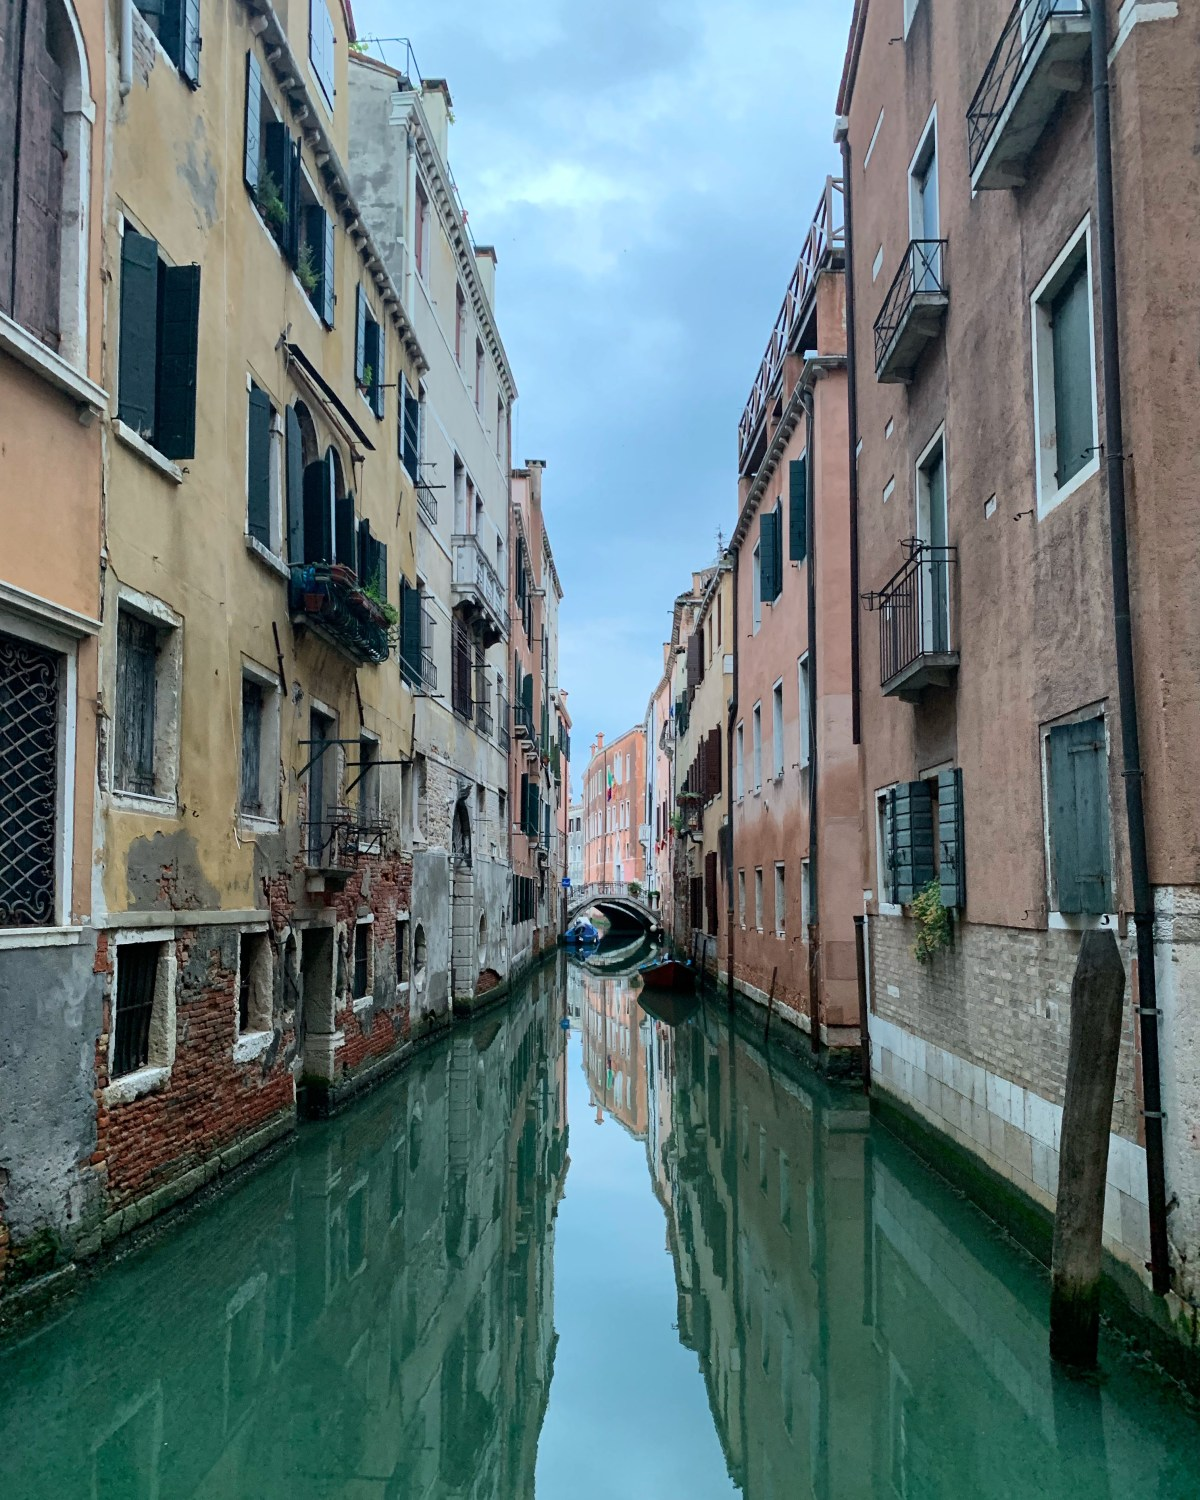 Venice canal waterway with reflection in the water